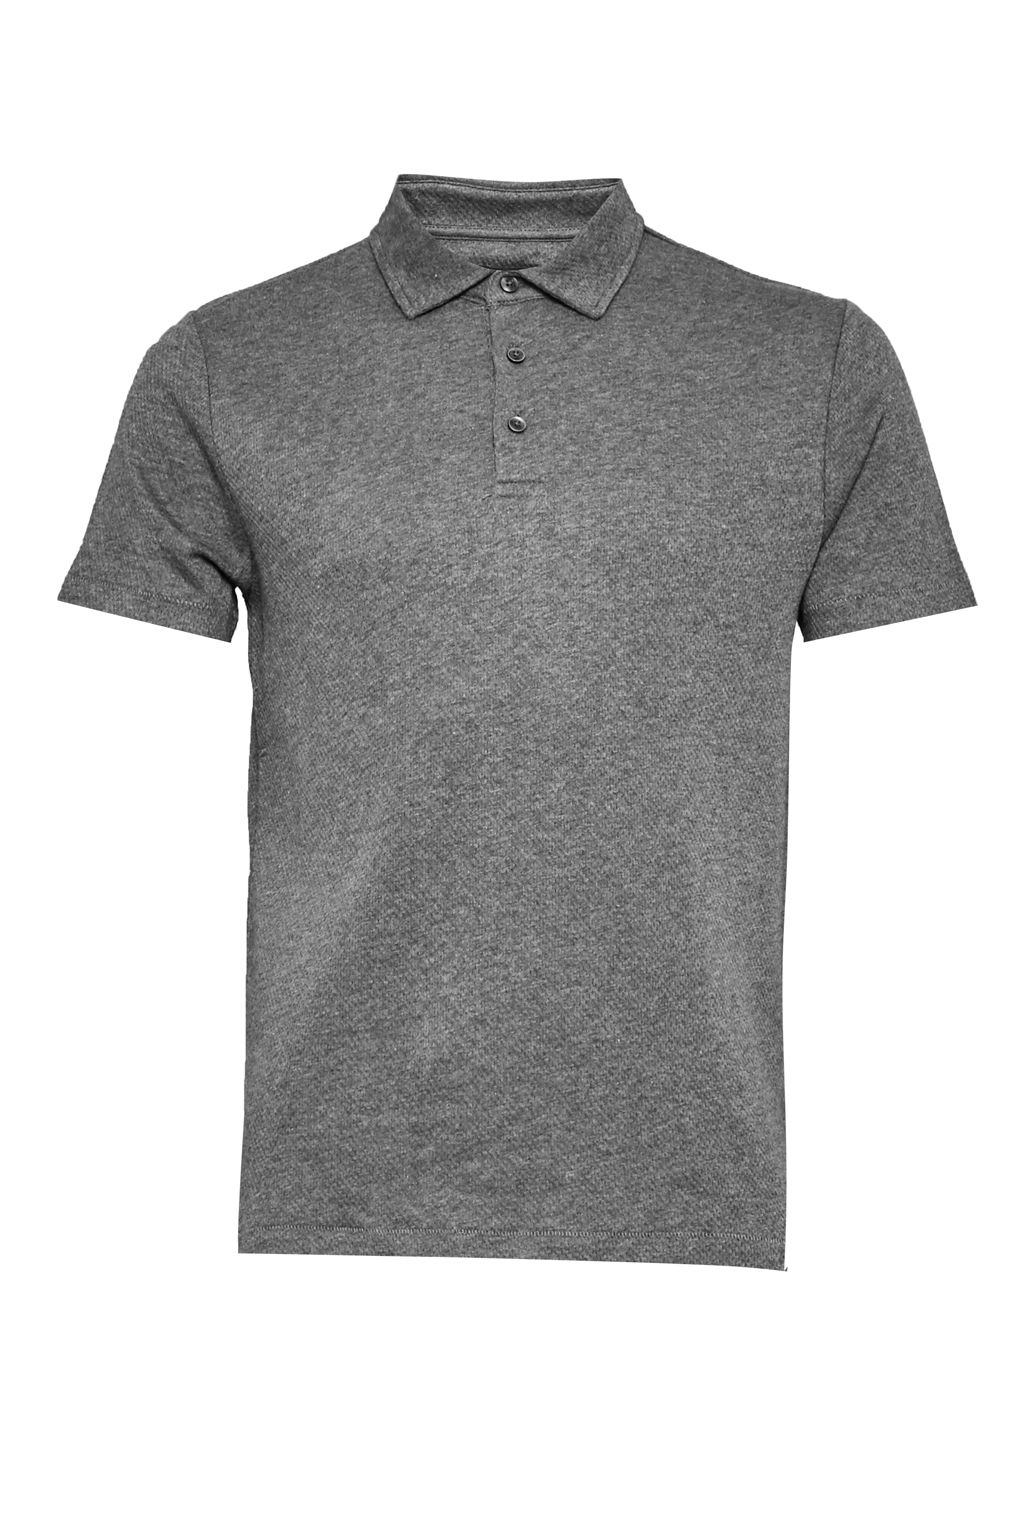 Men's French Connection Central Crepe Polo Shirt, Grey